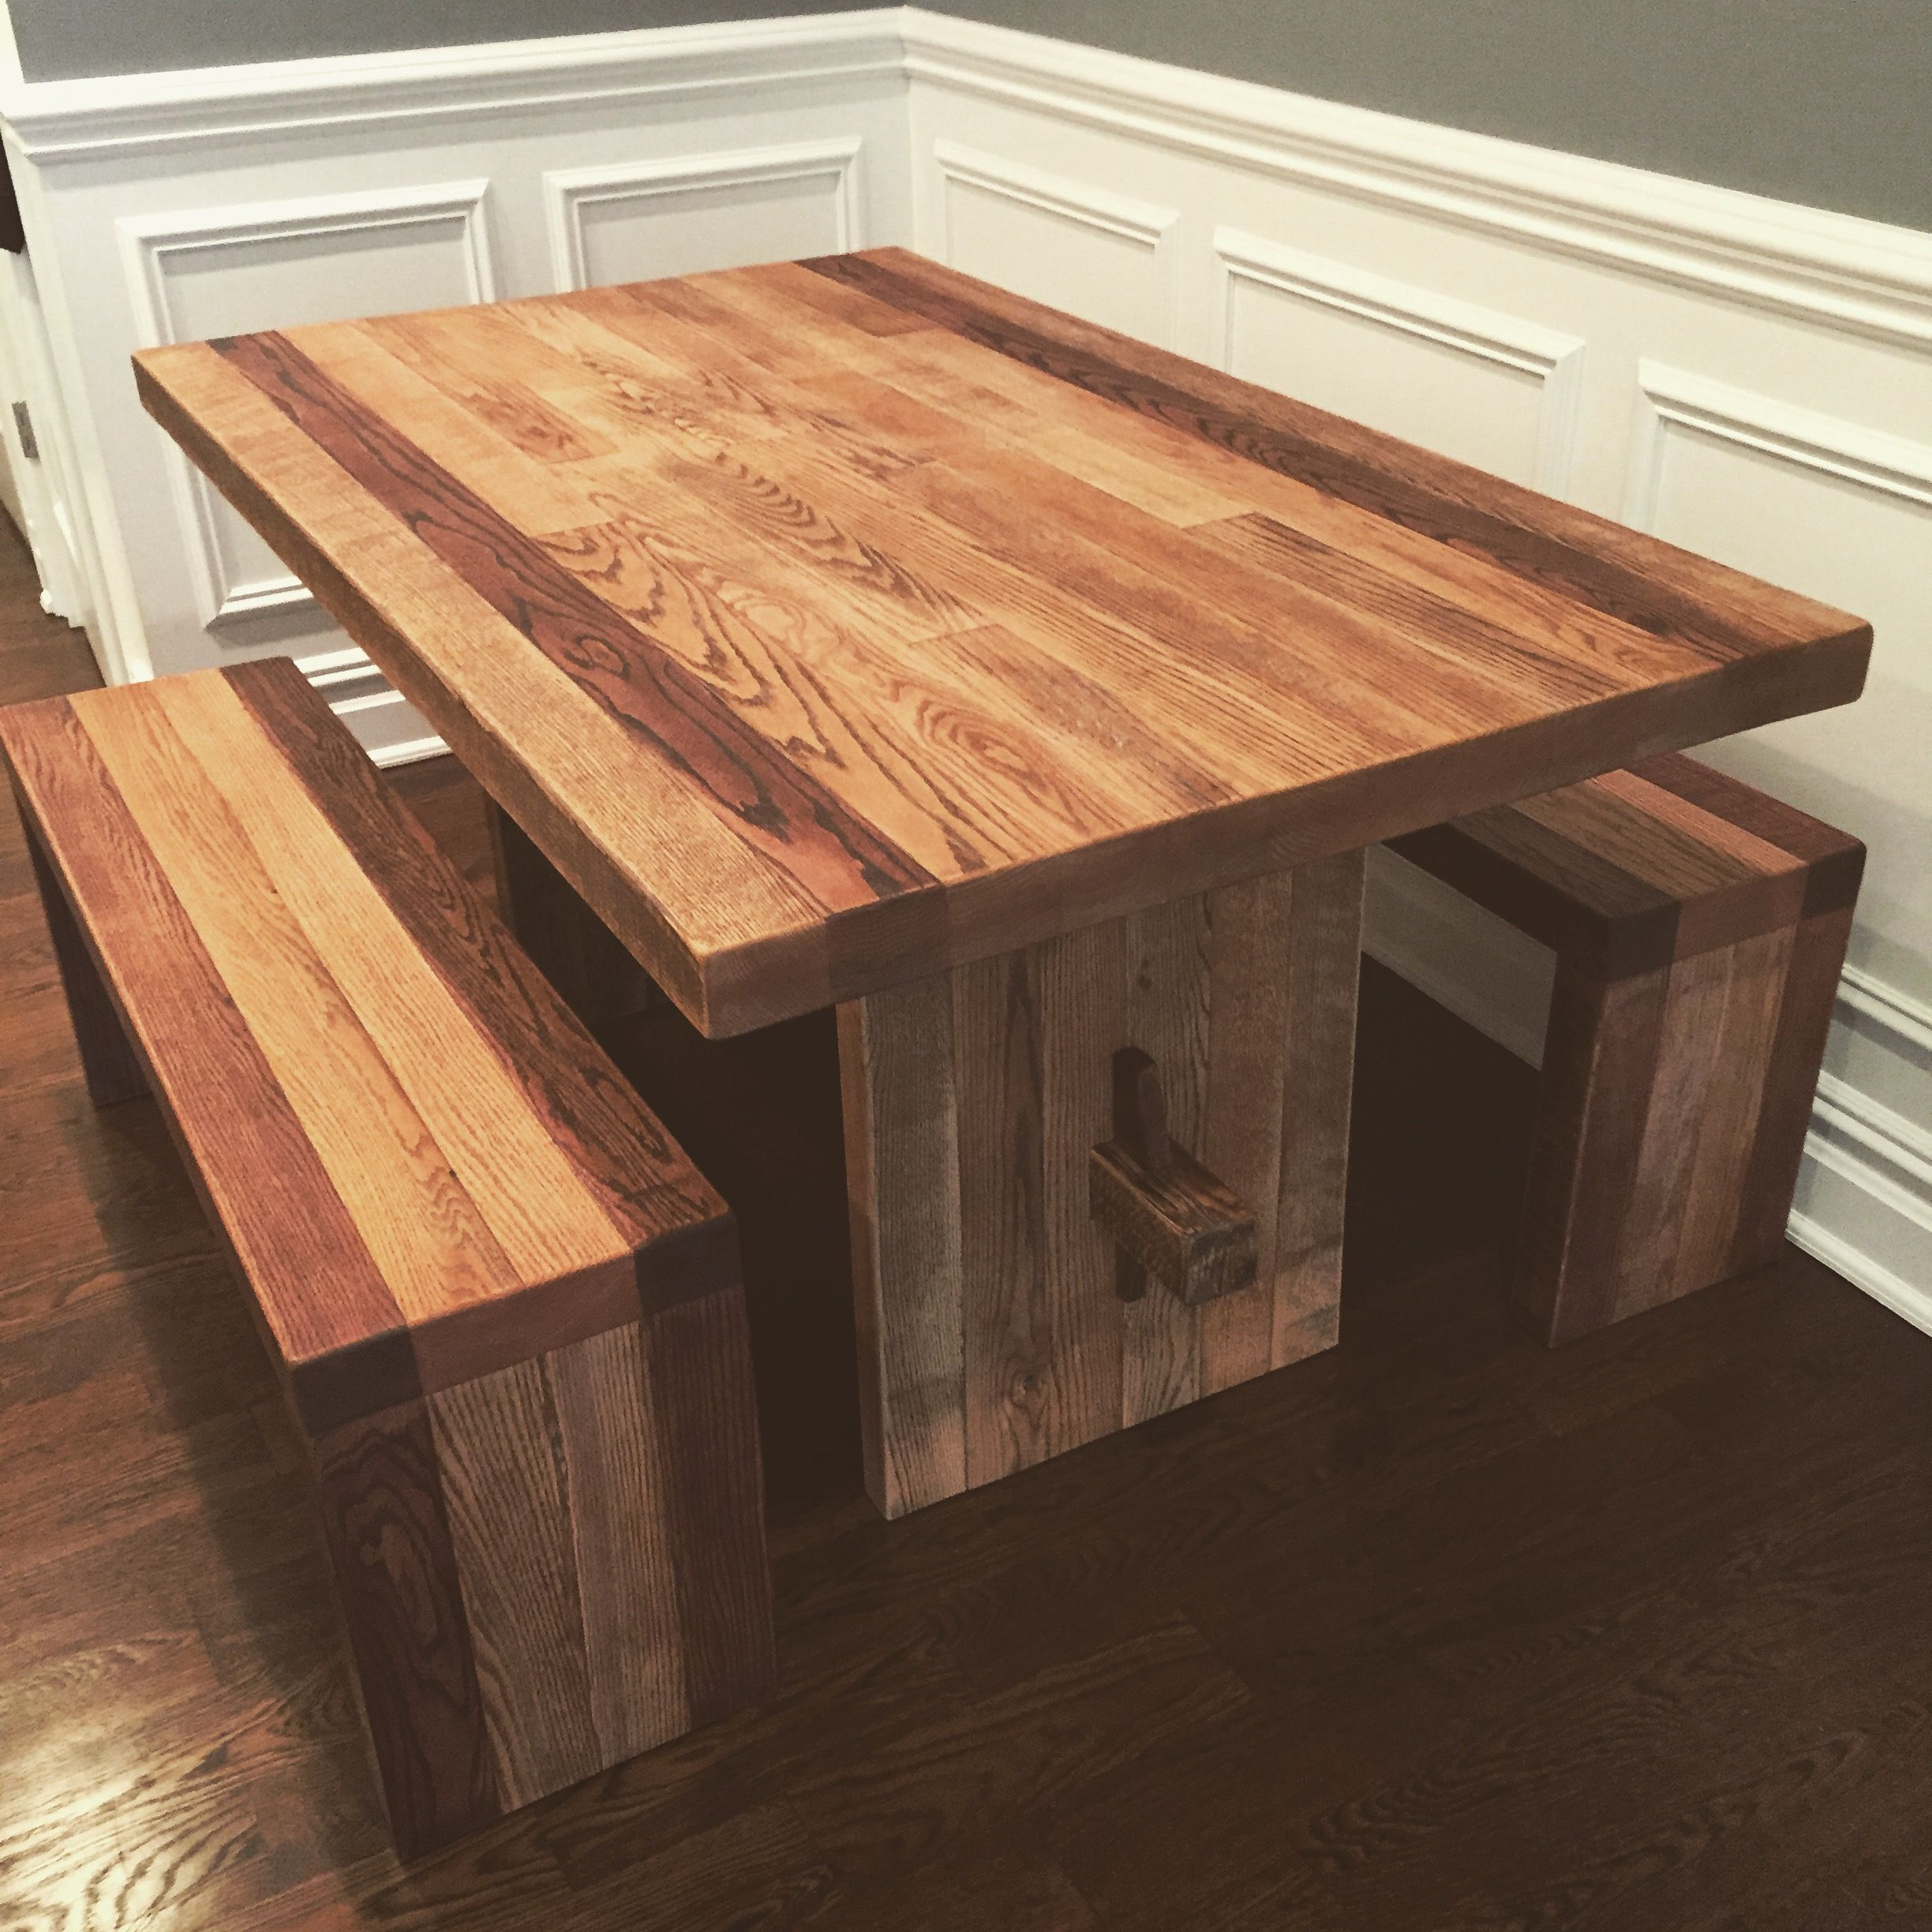 Buy a Custom Wood Indoor Picnic Table made to order from Wood